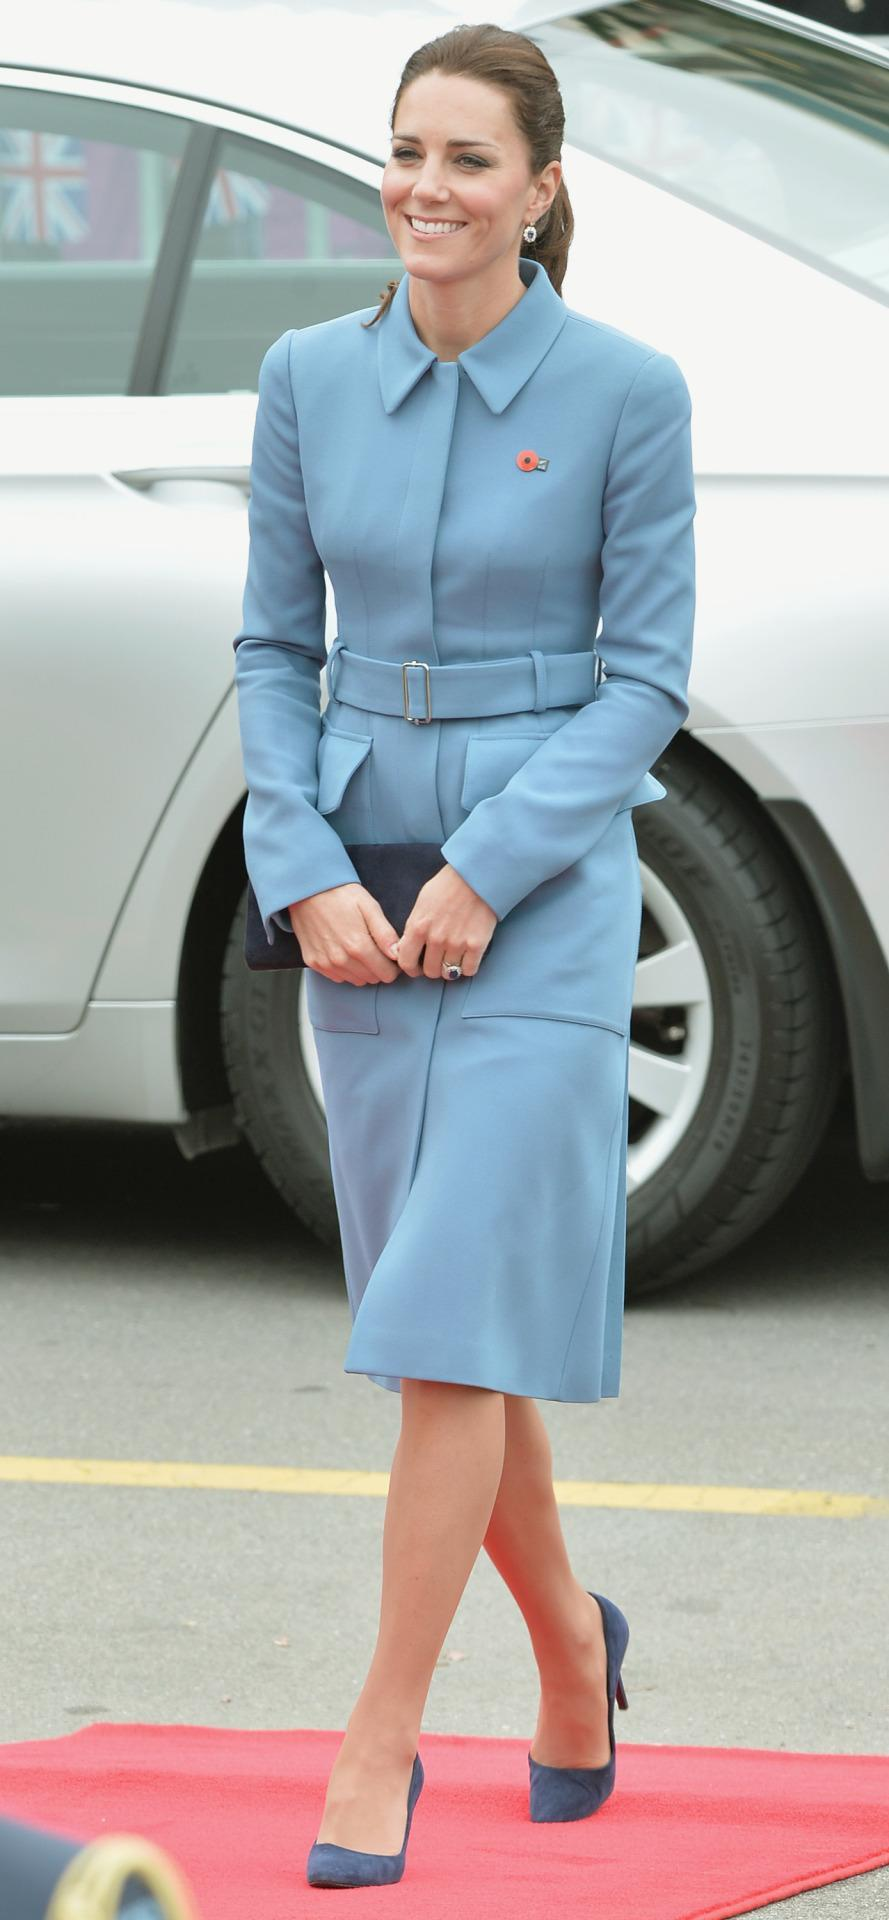 <p>Kate visited a war memorial in New Zealand wearing a blue customised coat dress by Alexander McQueen. A suede Stuart Weitzman bag and navy shoes completed the sleek look. </p><p><i>[Photo: PA]</i></p>